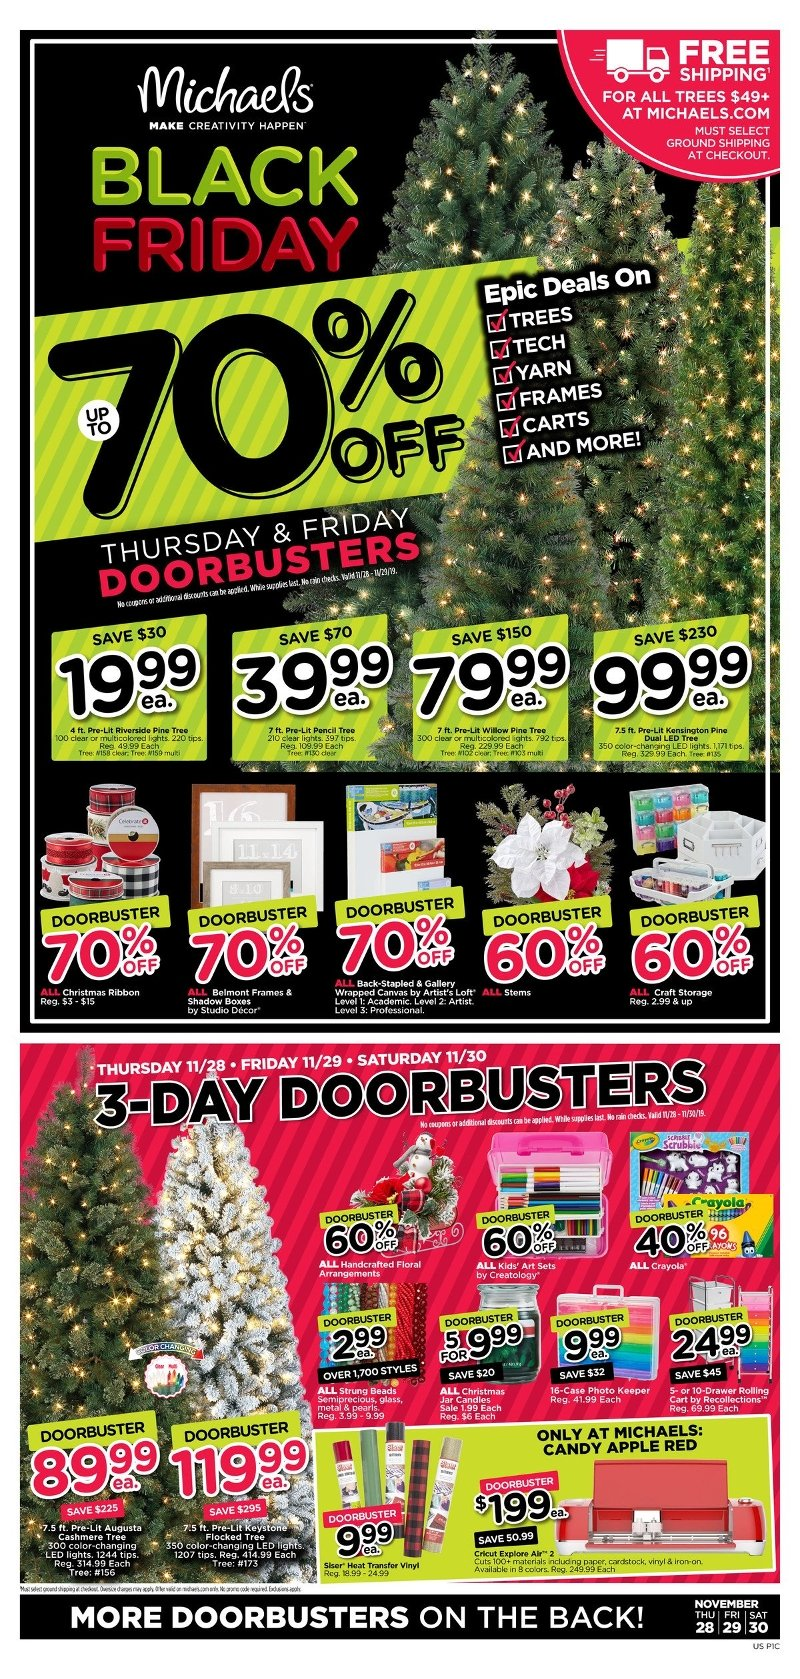 Michael's Black Friday 2019 Page 1